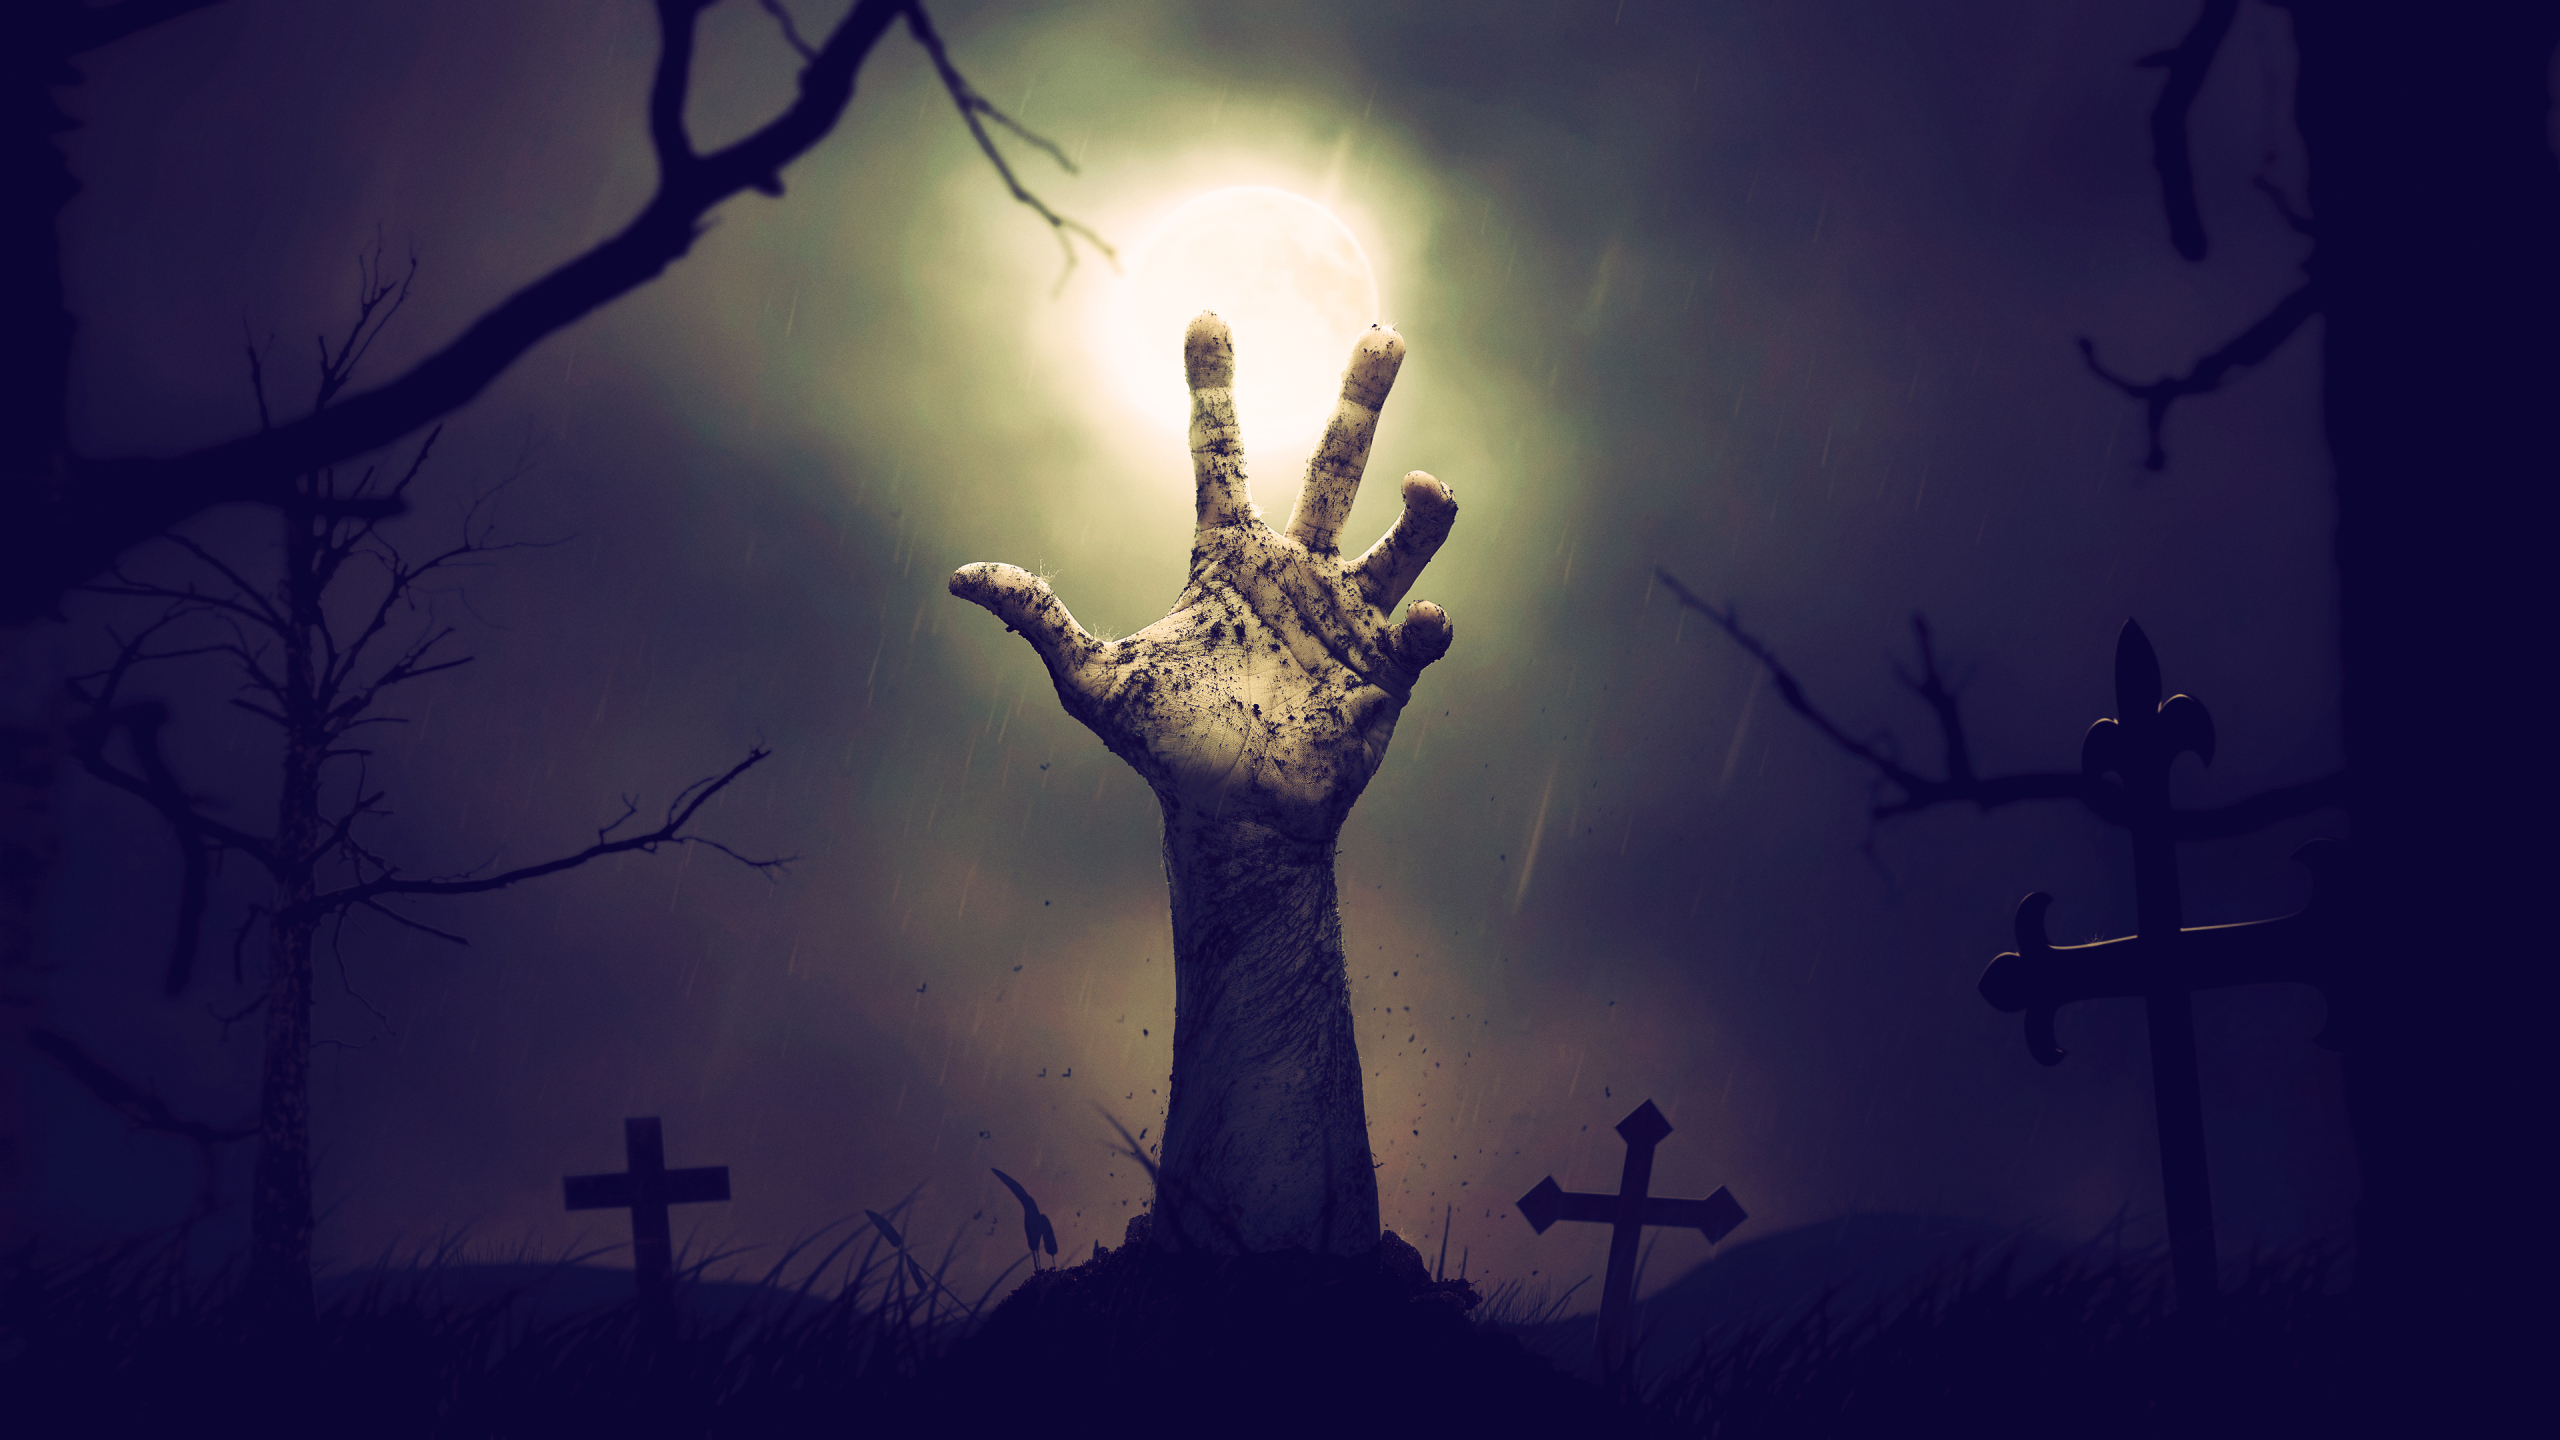 2560x1440 Zombie Hand From Cemetery 1440p Resolution Wallpaper Hd Fantasy 4k Wallpapers Images Photos And Background